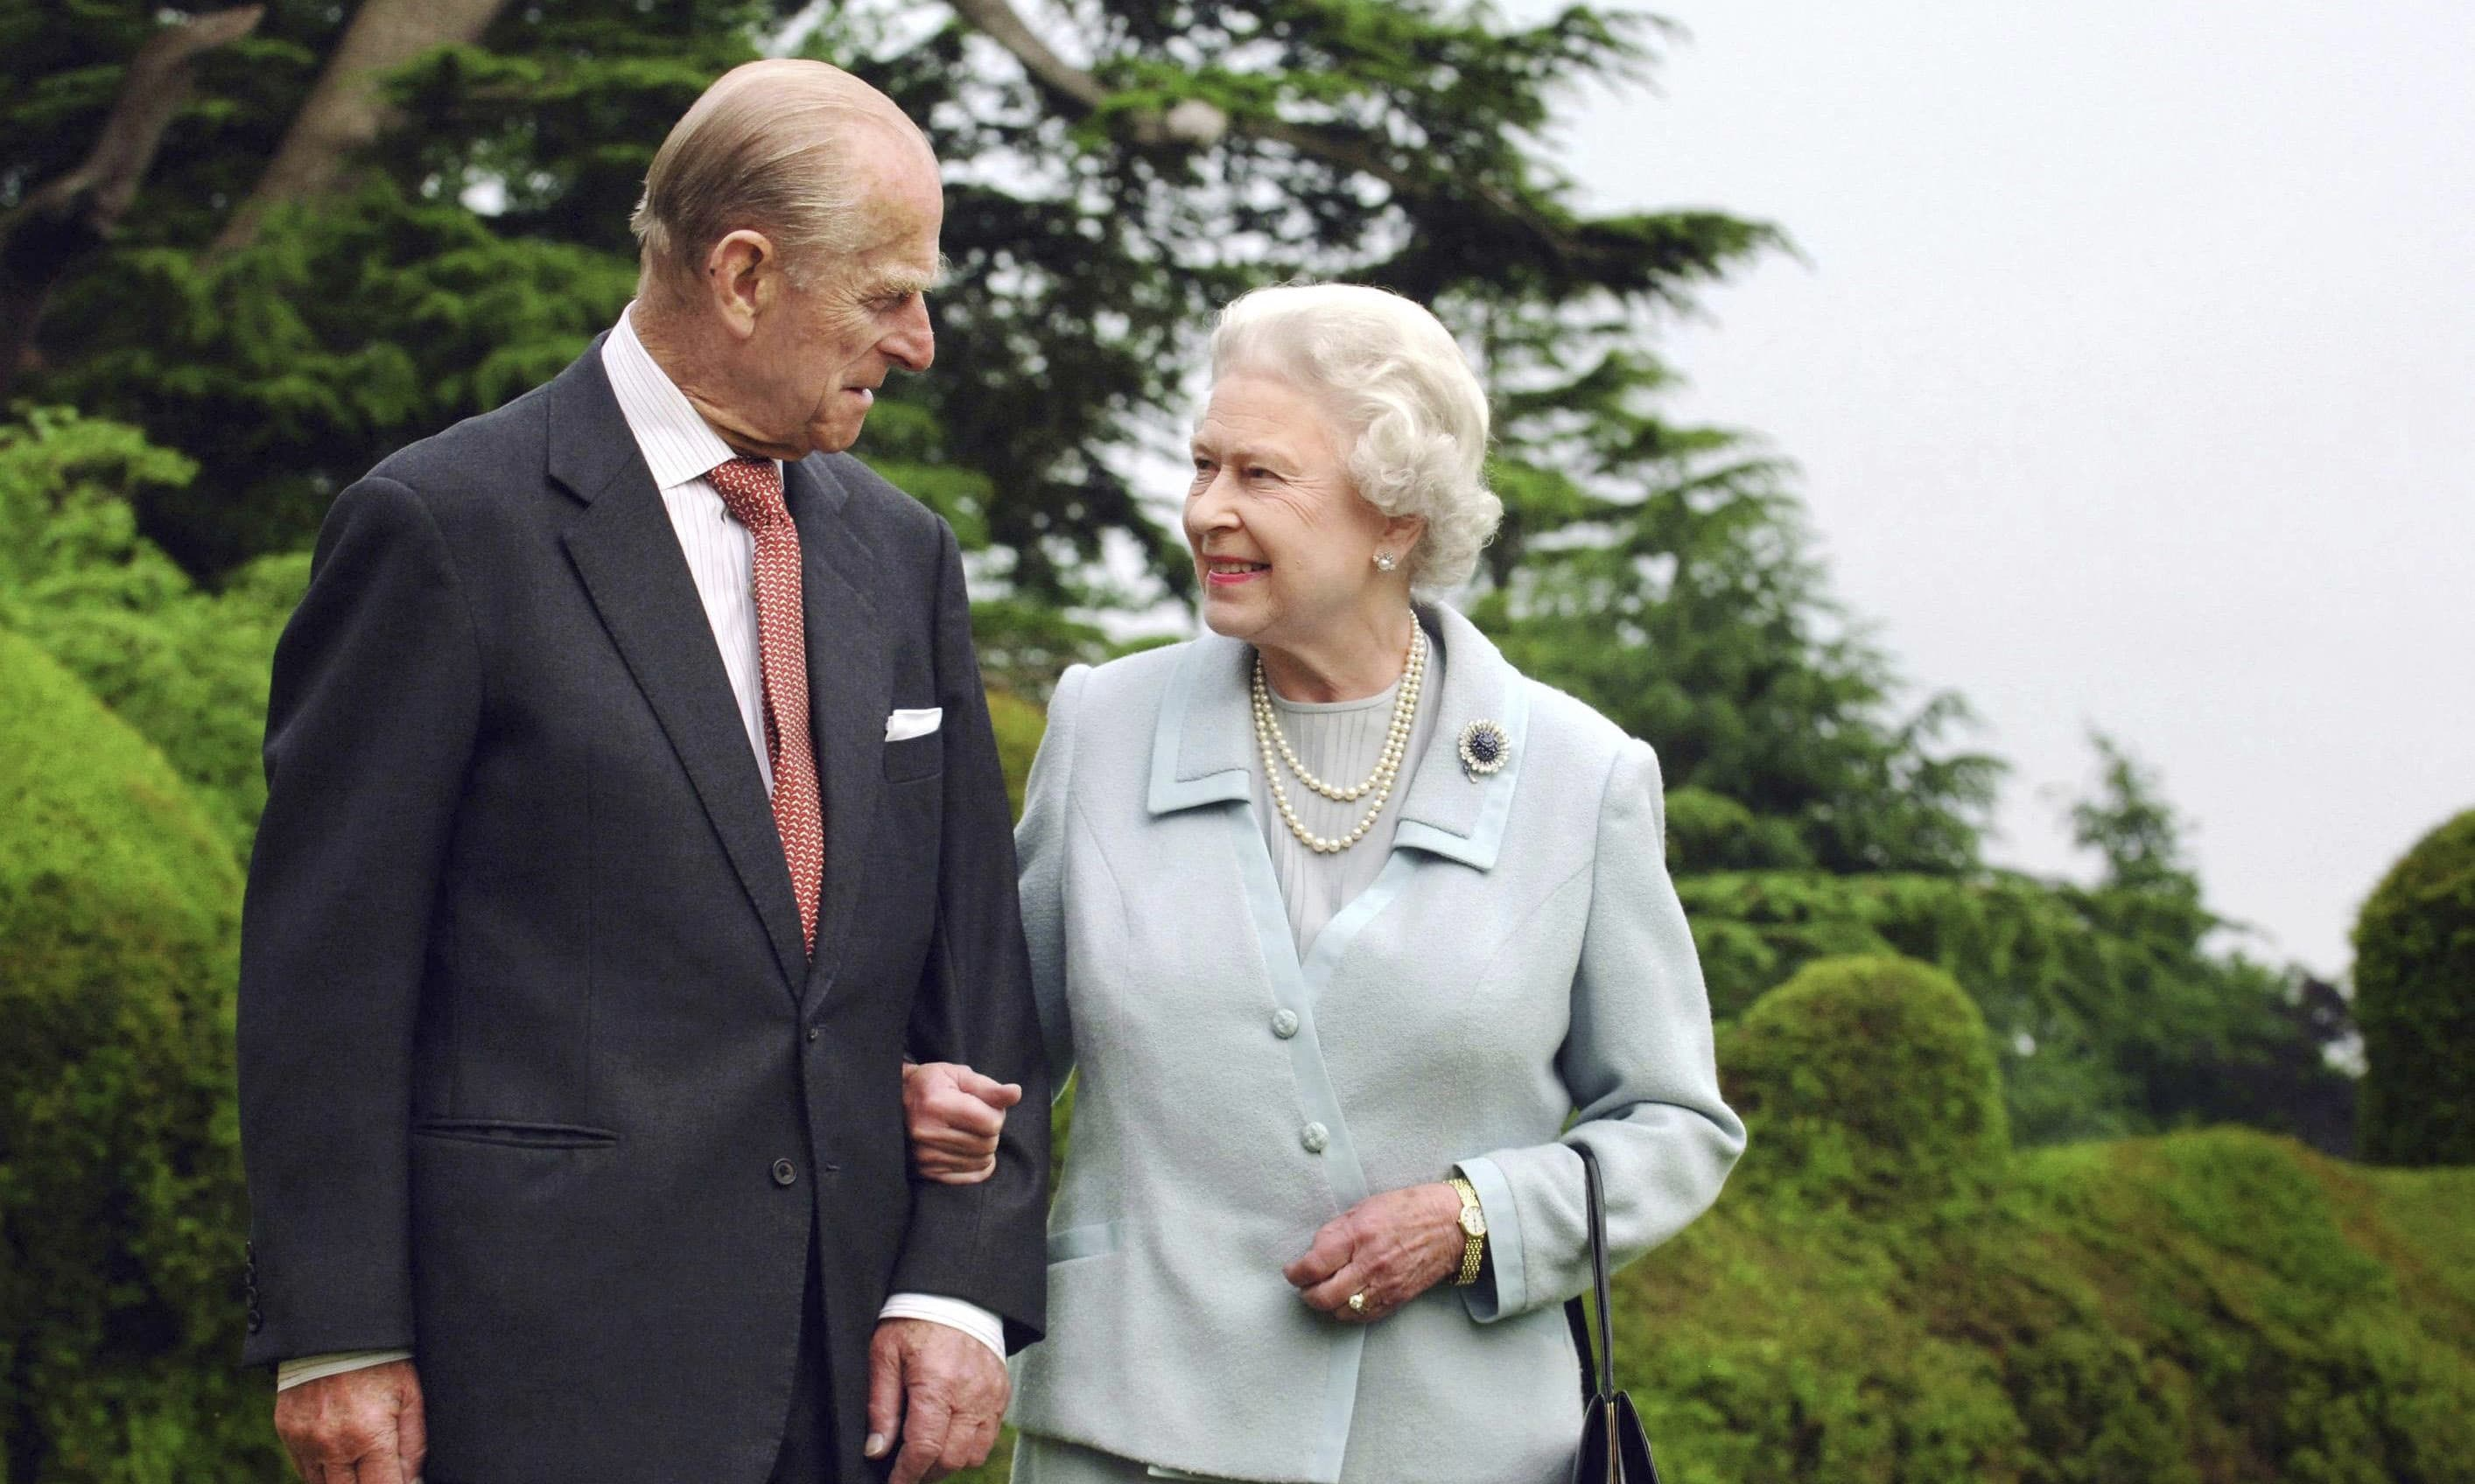 In this Nov. 18, 2017 file photo Britain's Queen Elizabeth II and The Duke of Edinburgh pose for a photo at Broadlands marking their diamond wedding anniversary. — AP